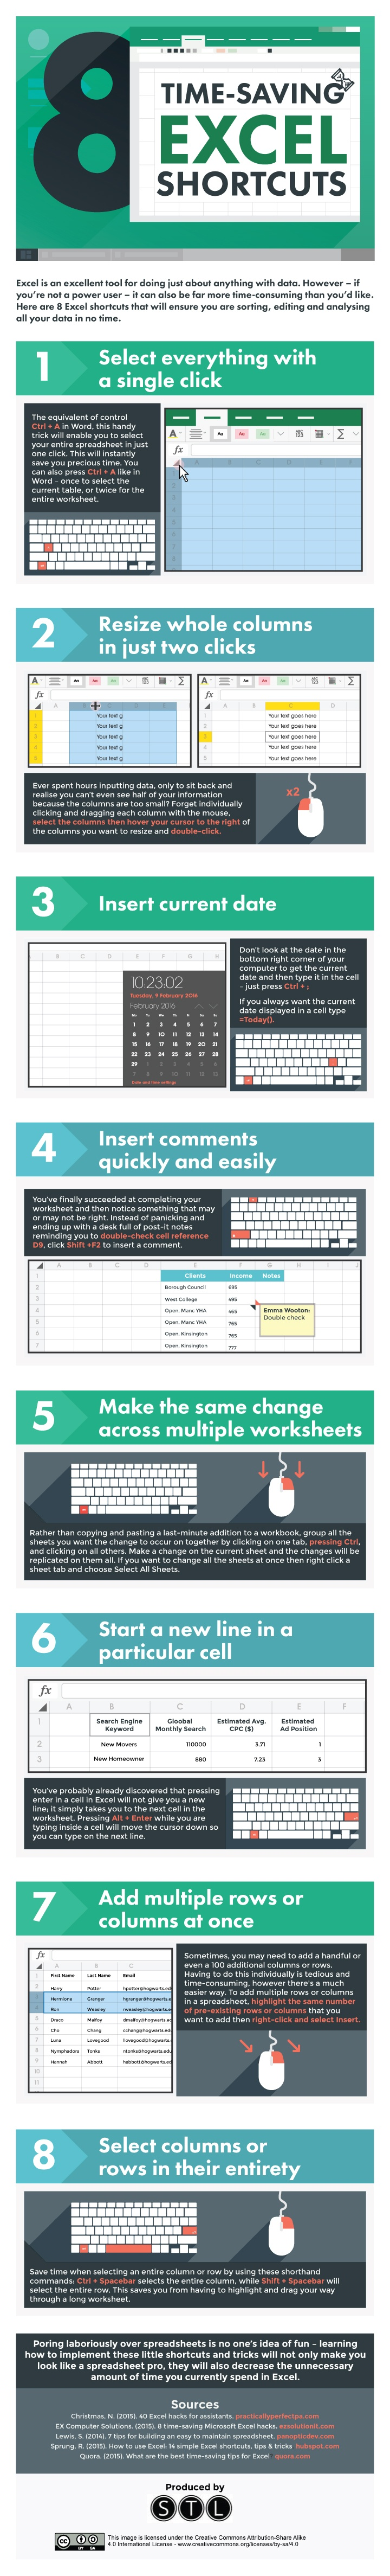 Excel_Shortcuts_Infographic